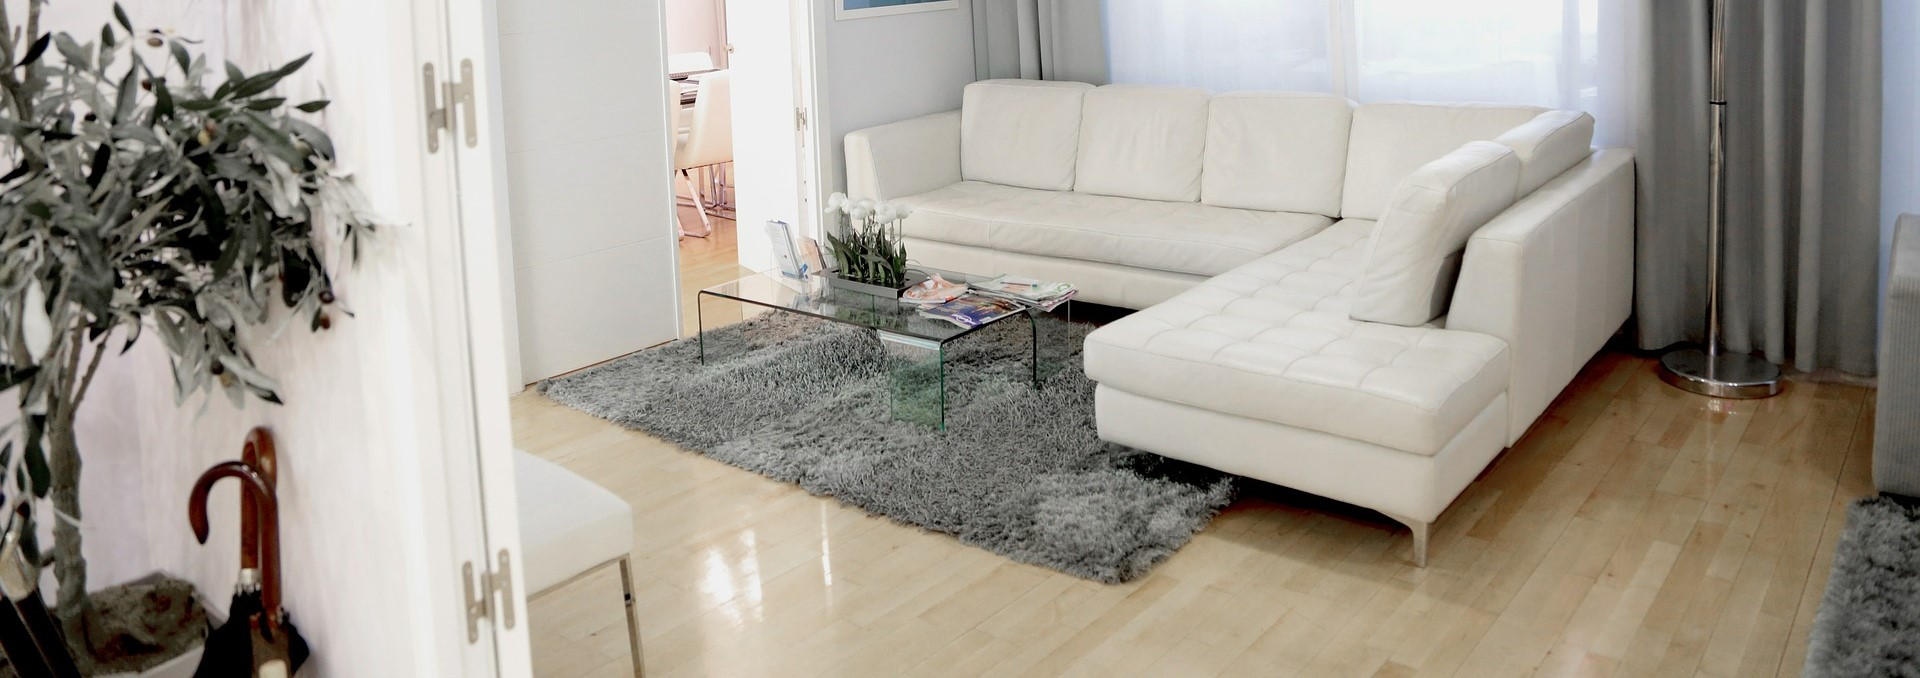 Beauty salon waiting room with white leather sofa